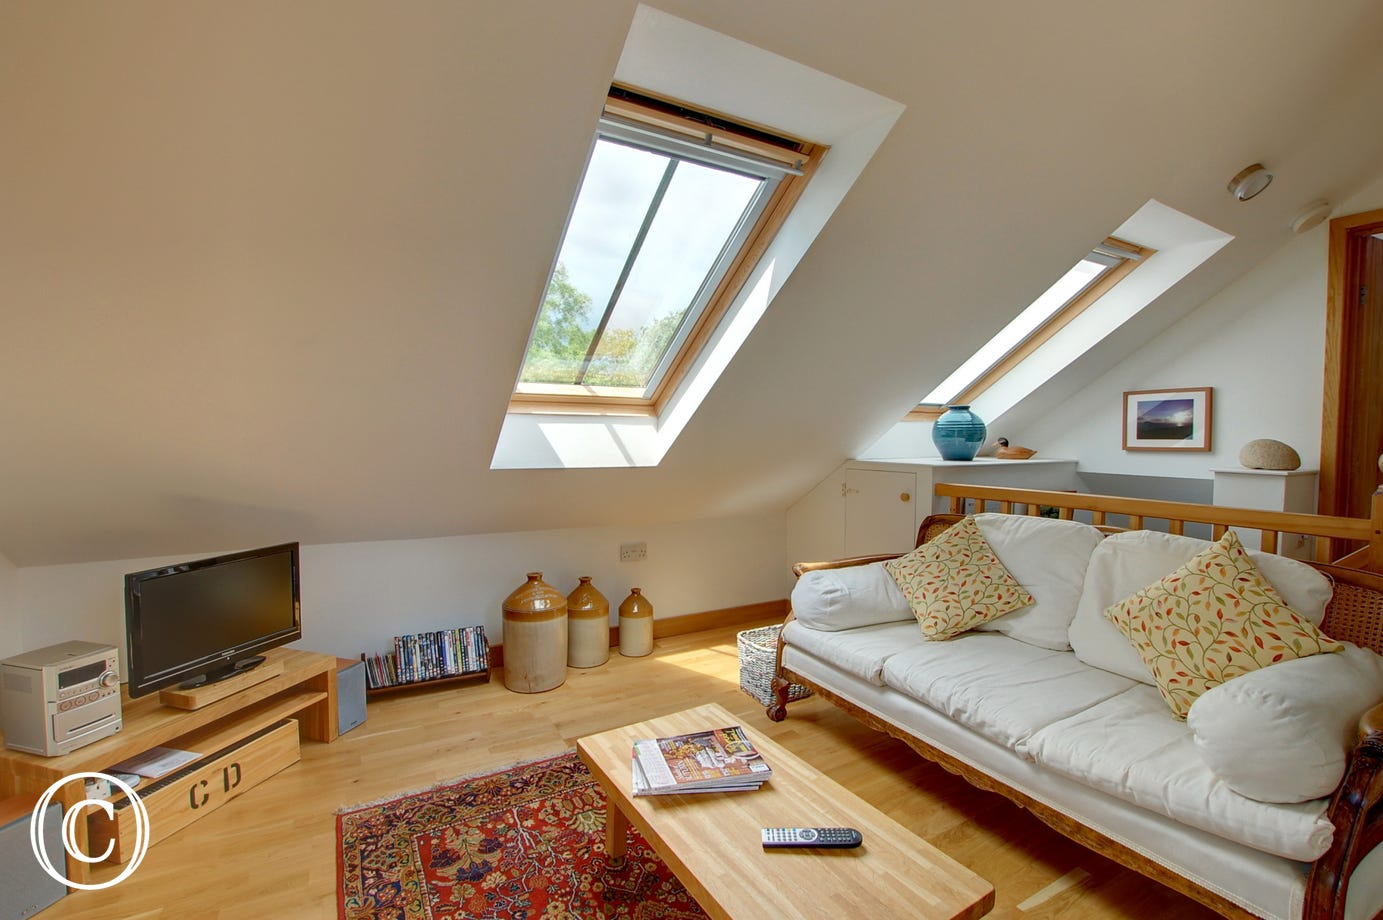 Bright and airy sitting room with 2 velux windows allowing light in.